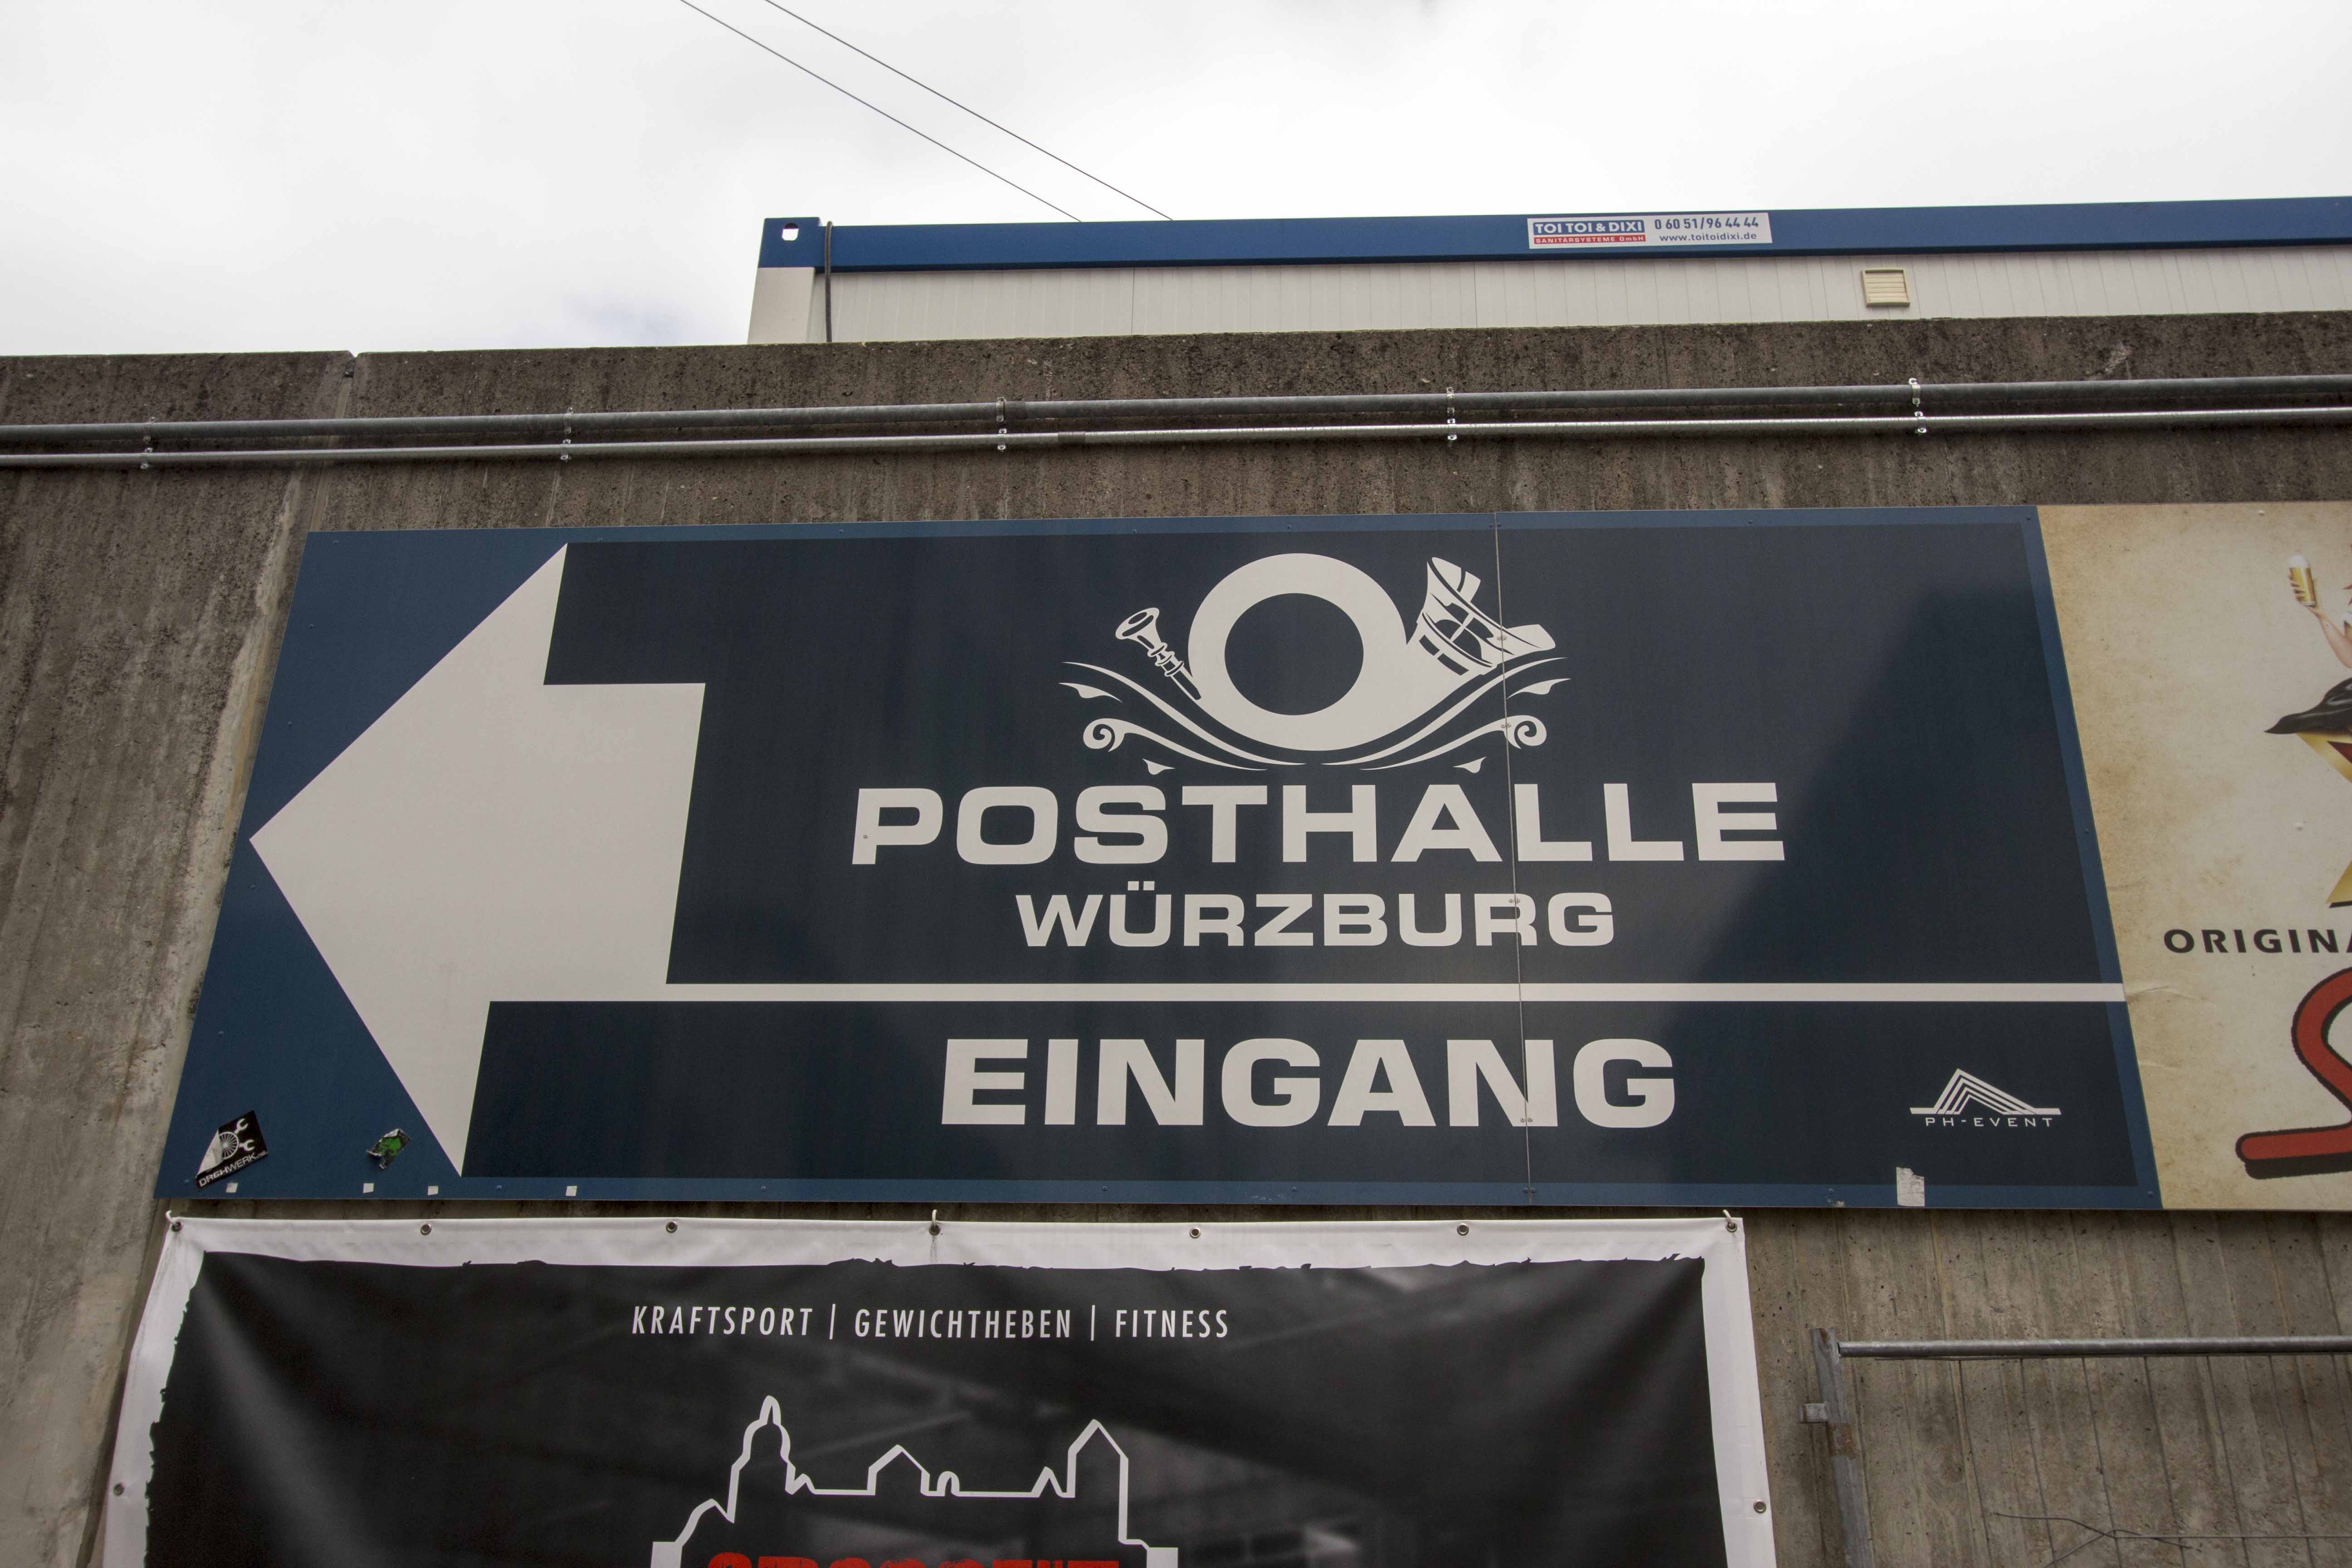 Posthalle